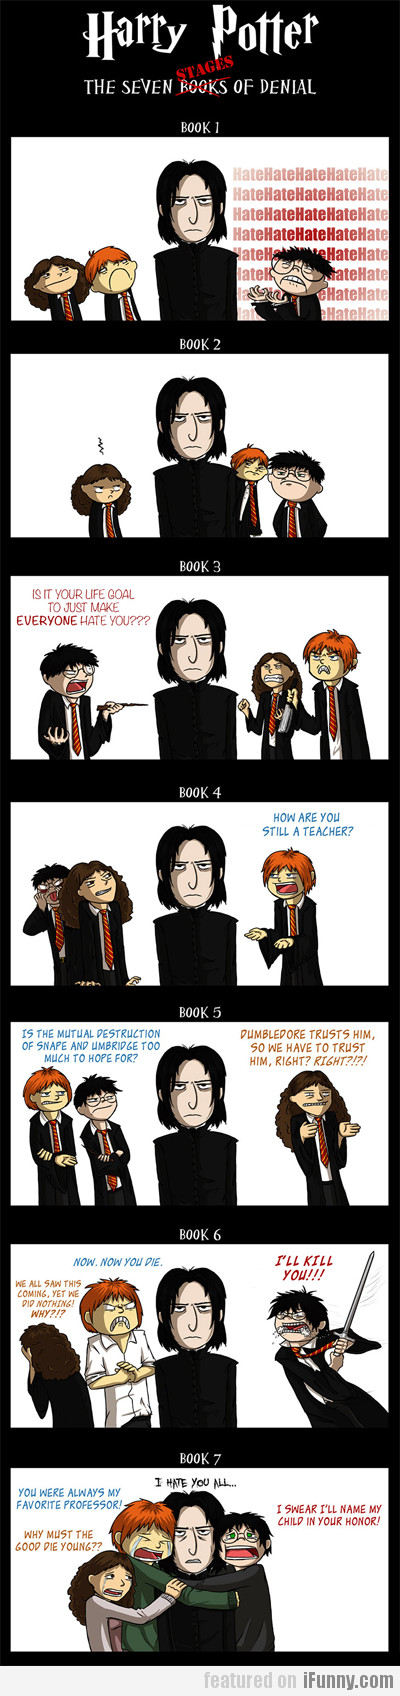 Harry Potter, The Seven Stages Of Denial